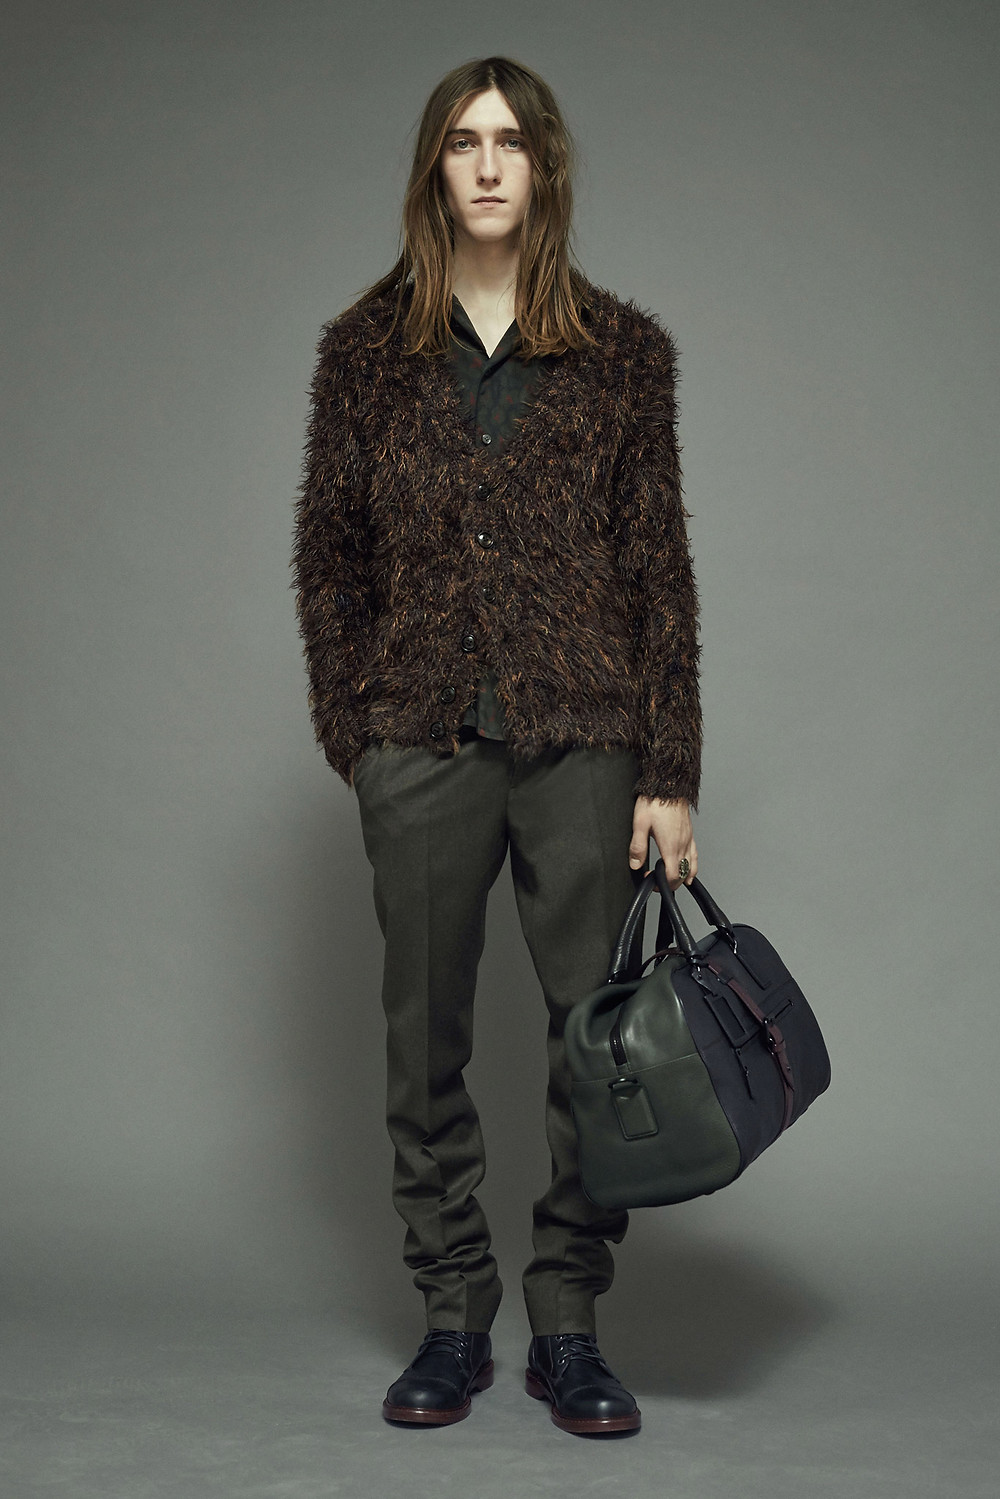 Marc_Jacobs_013_1366